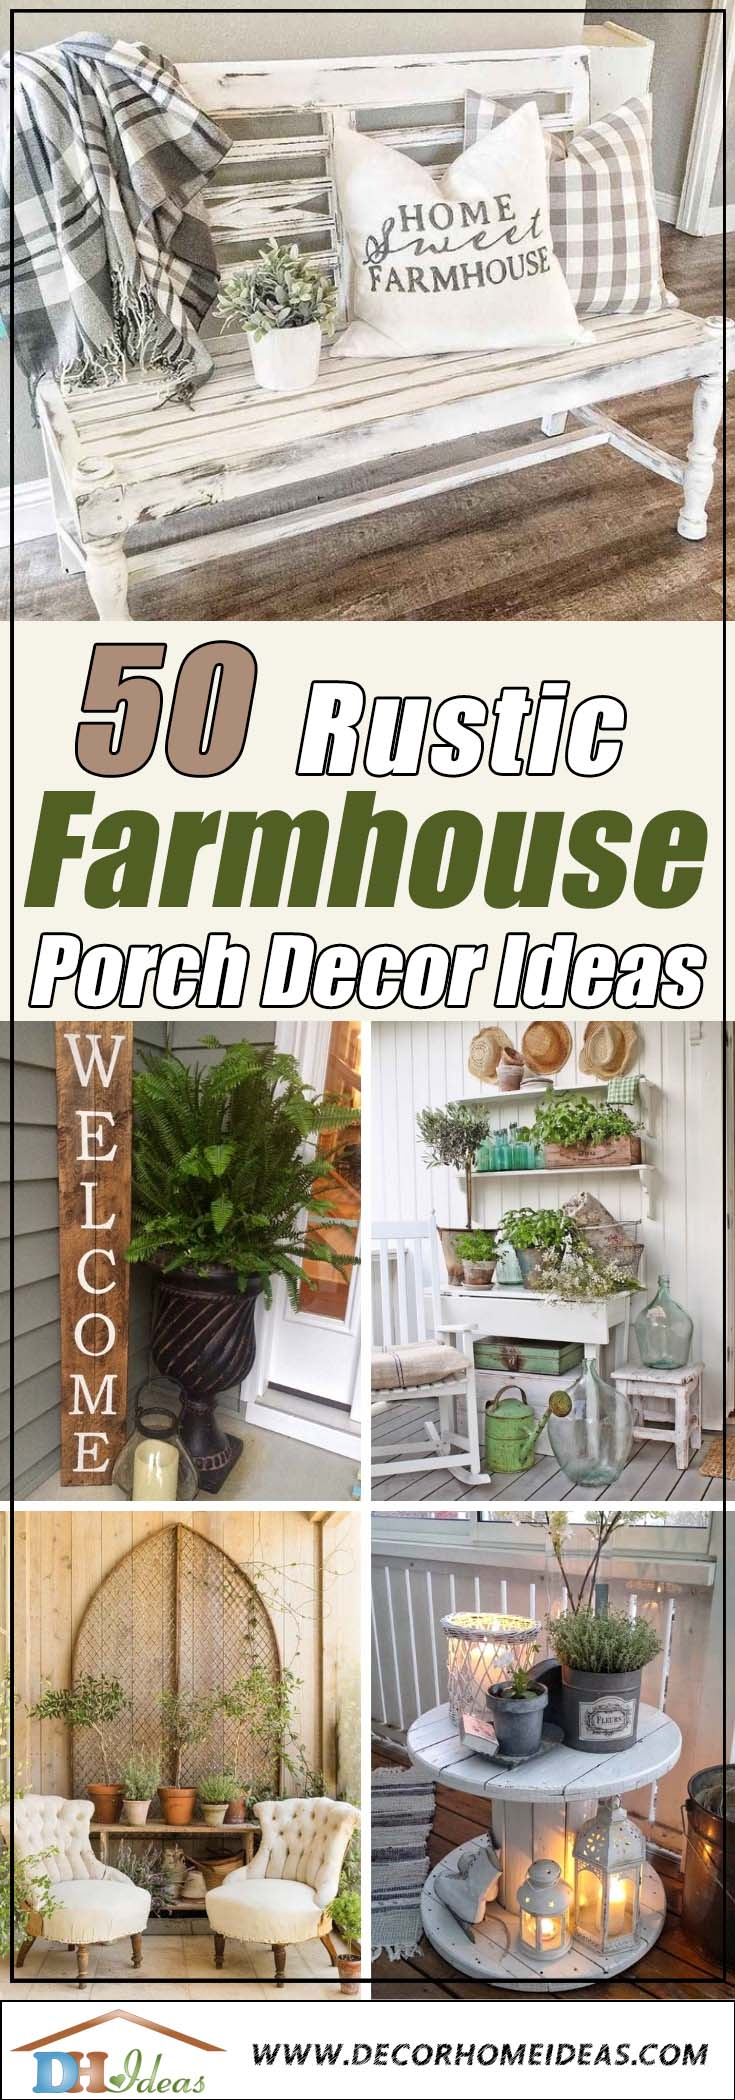 Rustic Farmhouse Front Porch Decor Ideas #farmhouse #rustic #porch #decor #decorhomeideas